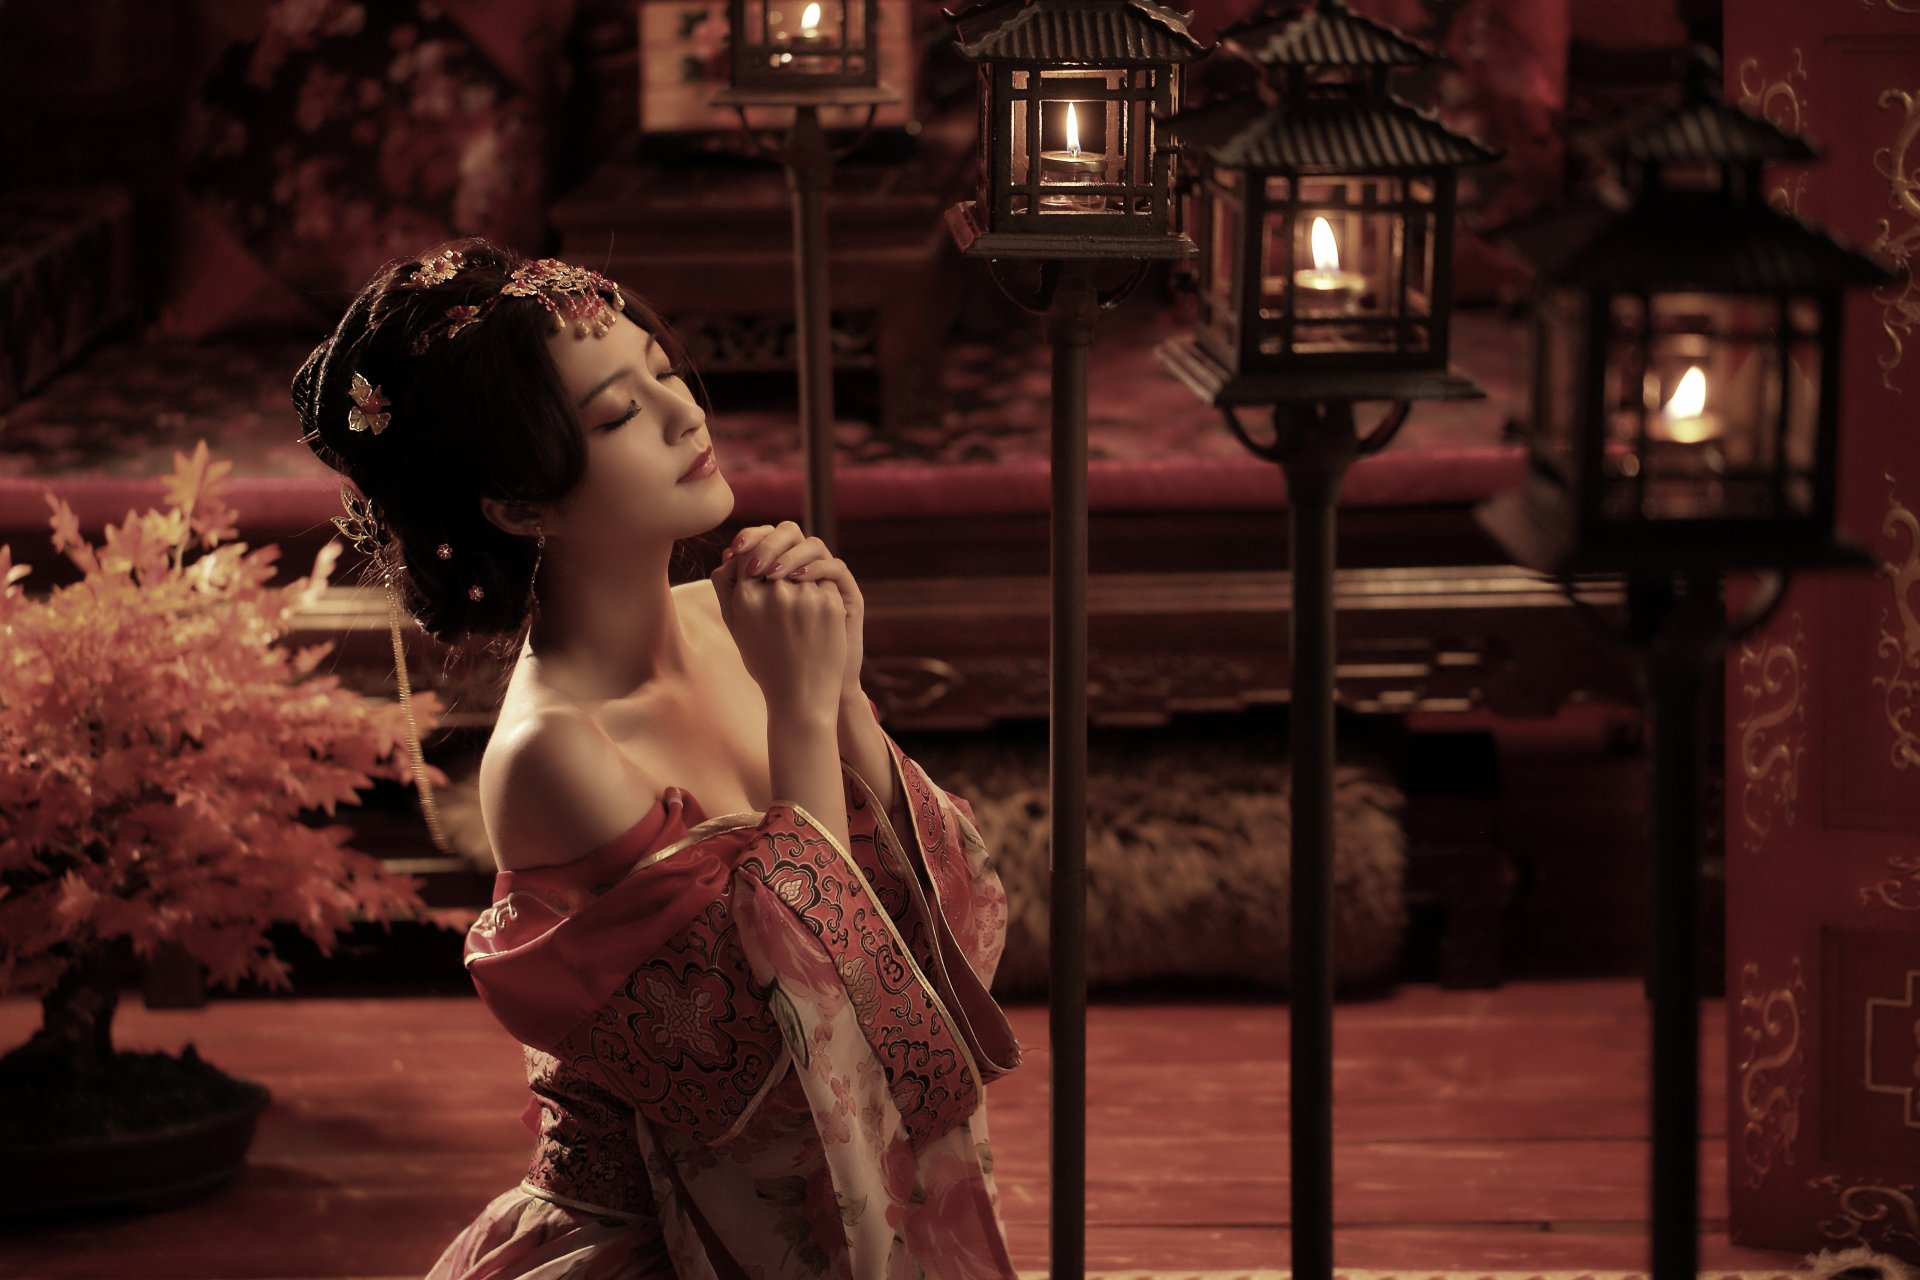 Women - Asian  National Dress Candle Lantern Woman Wallpaper